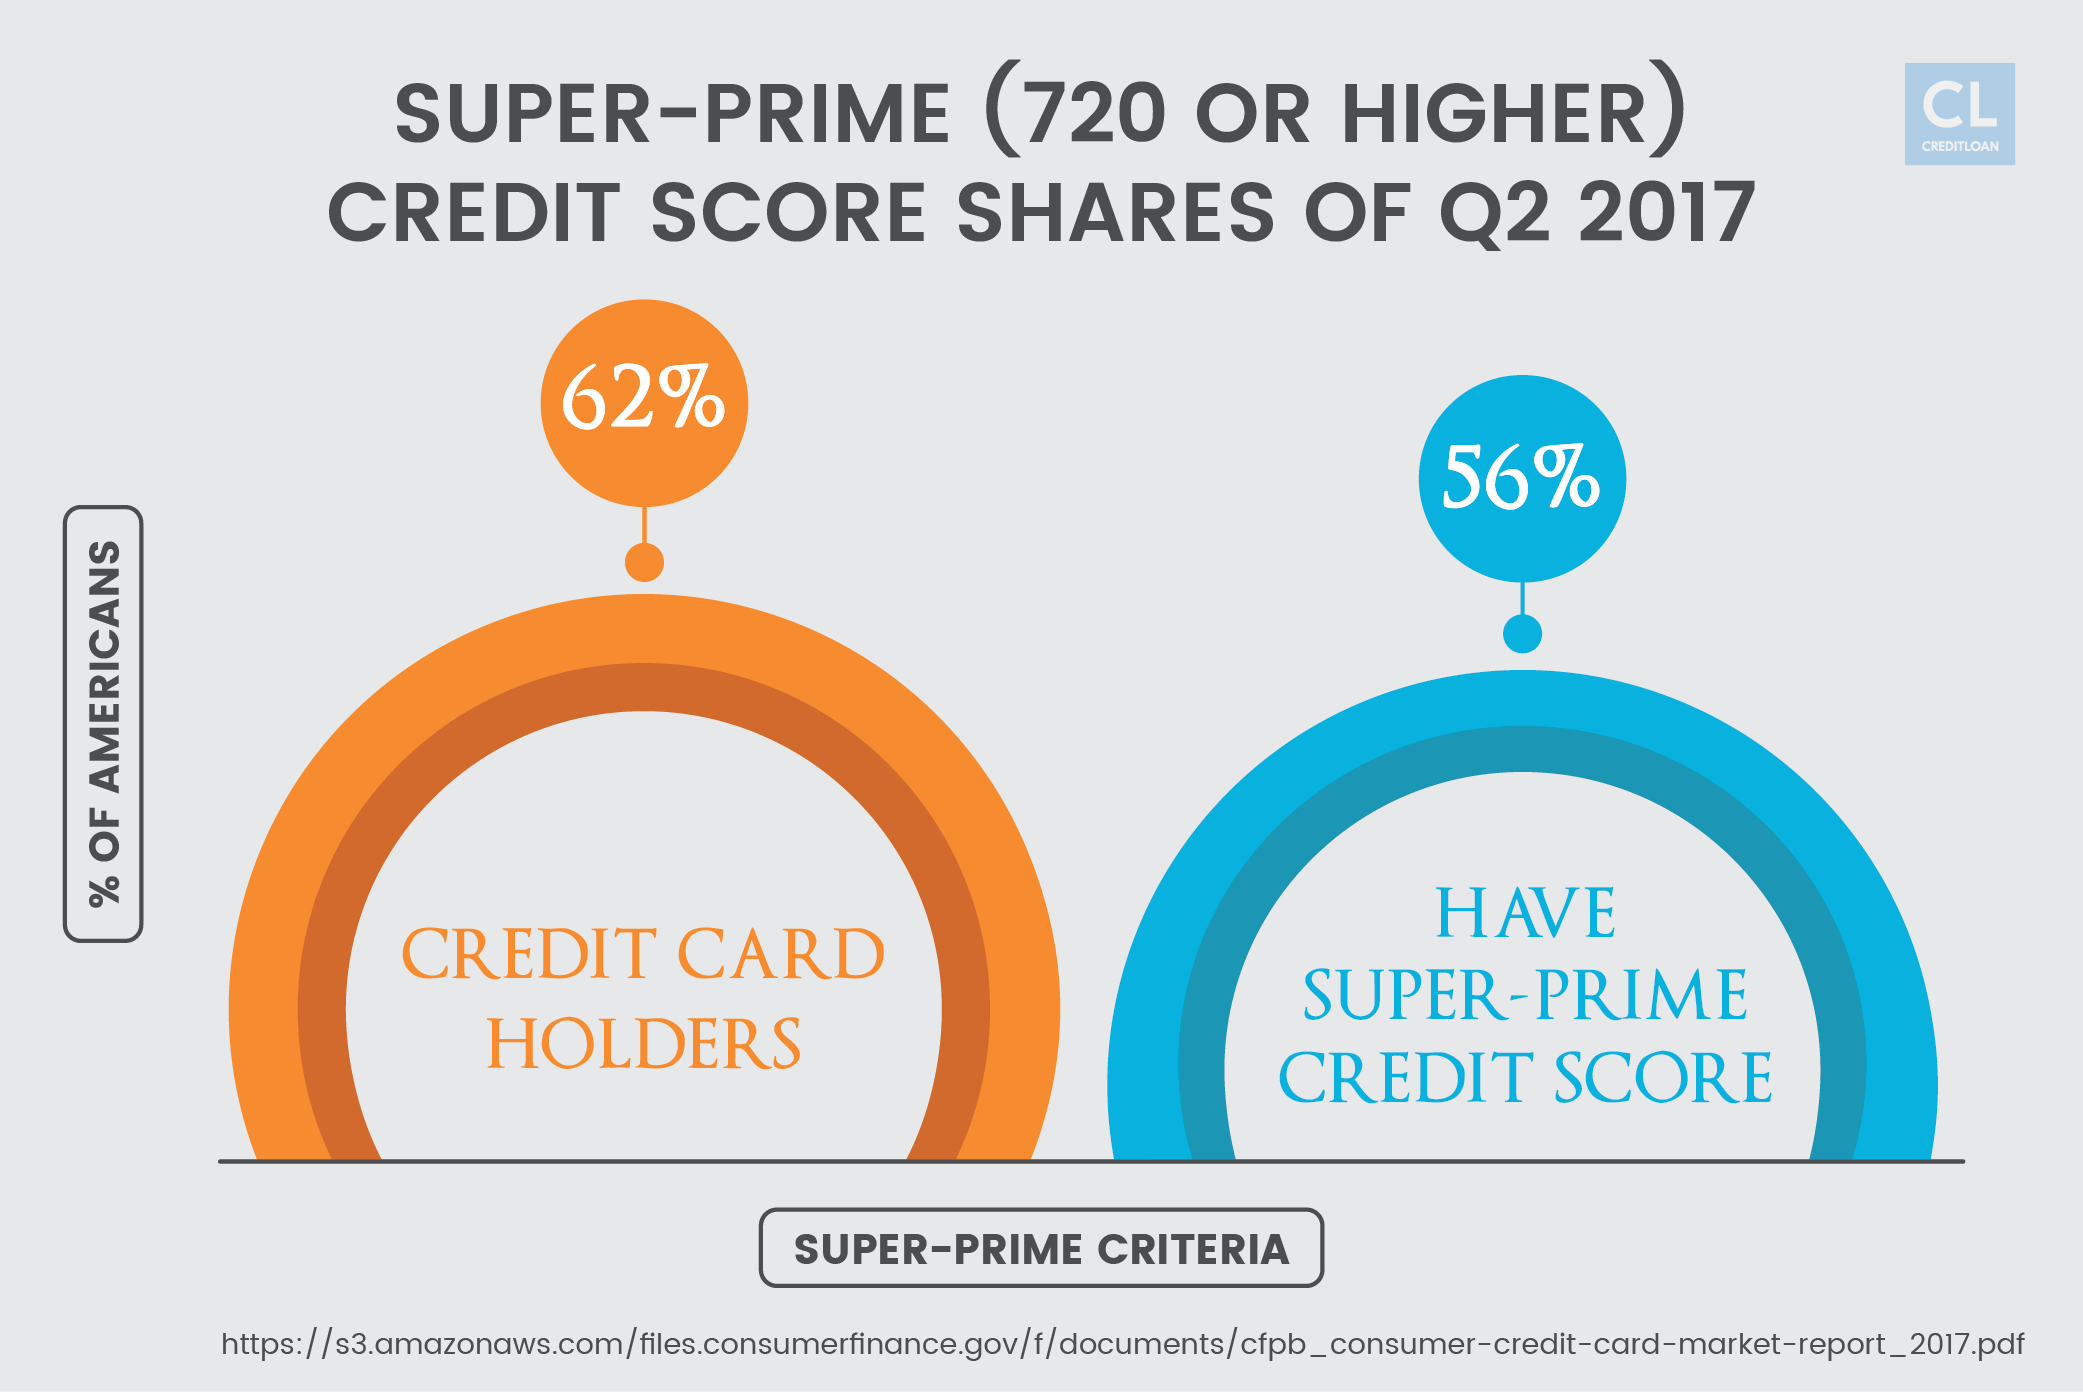 Super-prime (720 or Higher) Credit Score Shares of Q2 2017